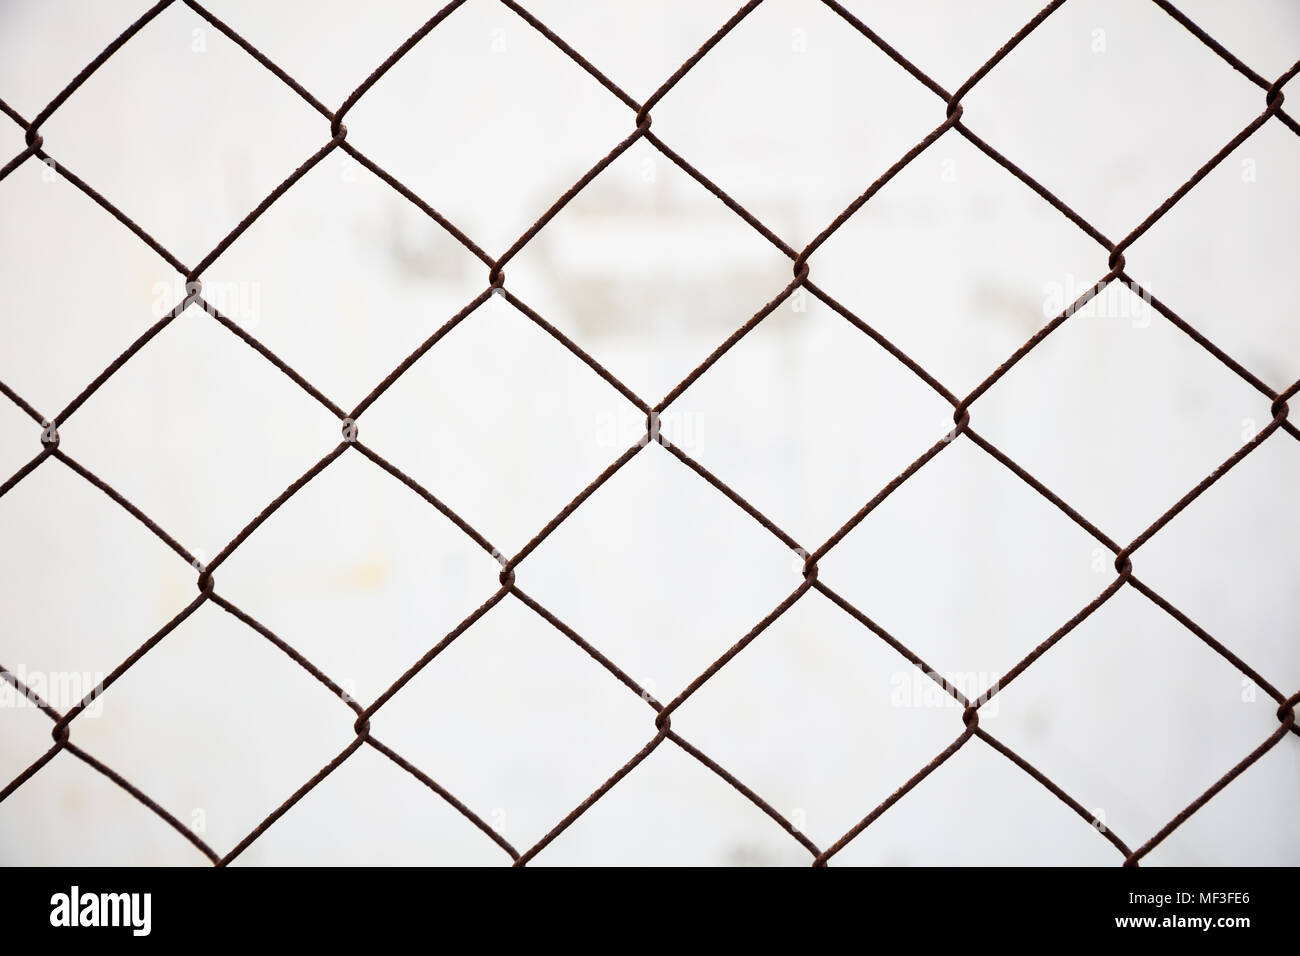 Wire Mesh Cage Stock Photos & Wire Mesh Cage Stock Images - Alamy